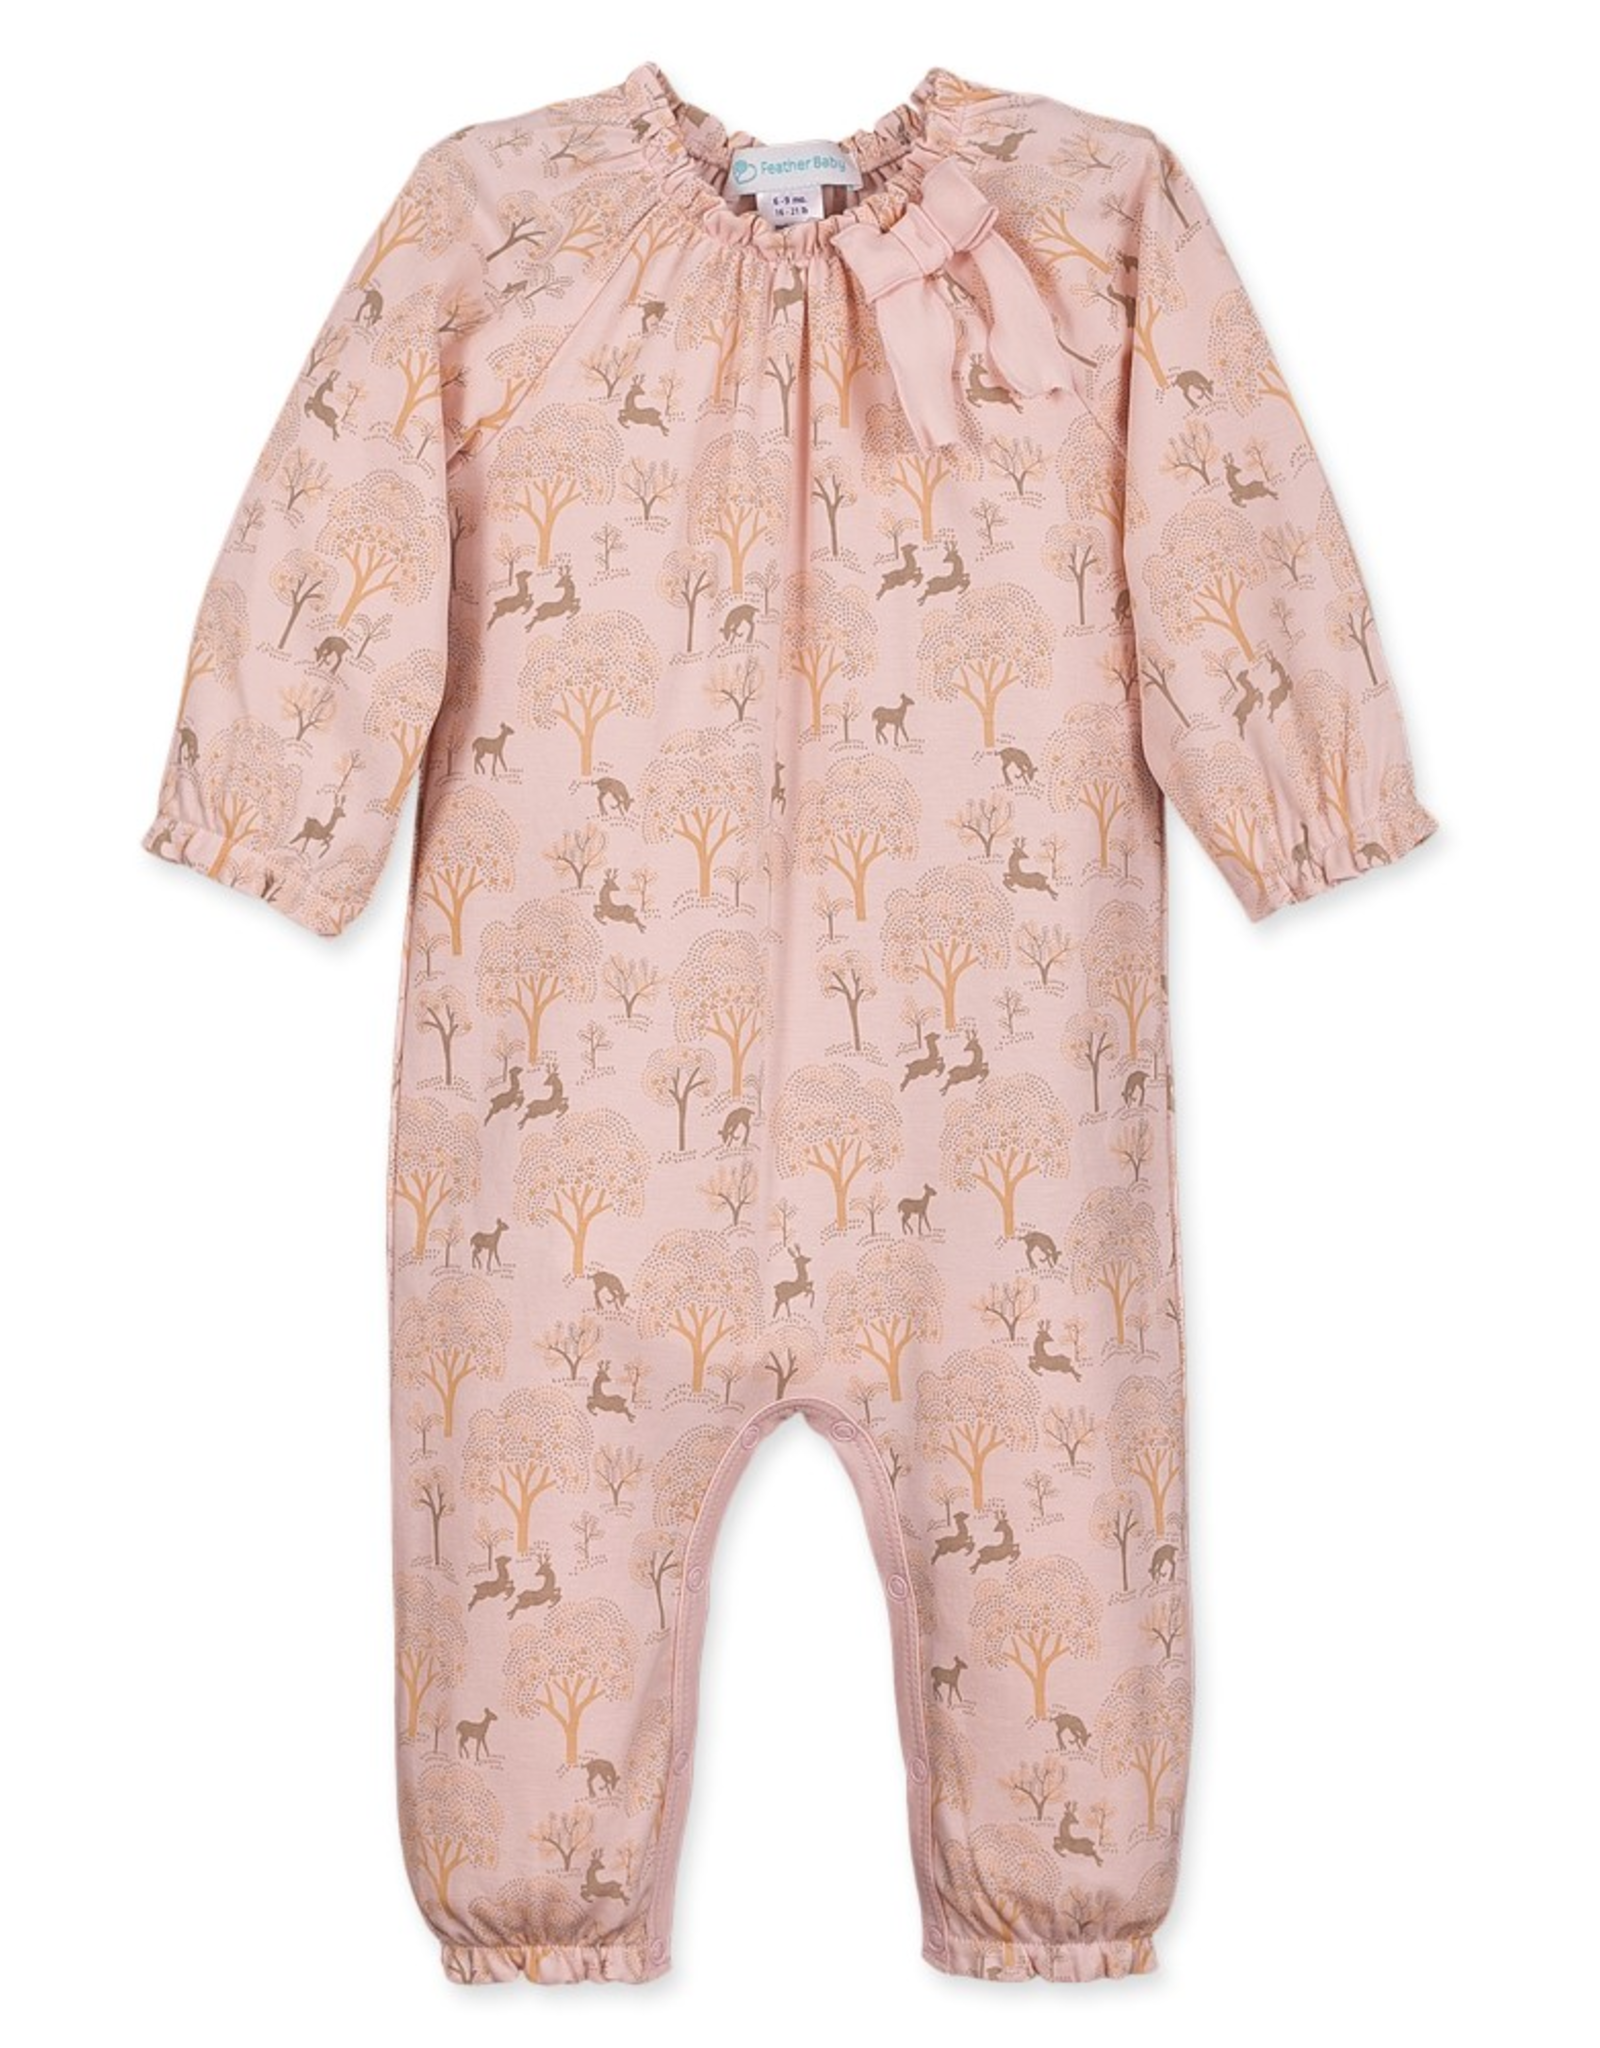 feather baby Bow Romper in Deer & Appletree